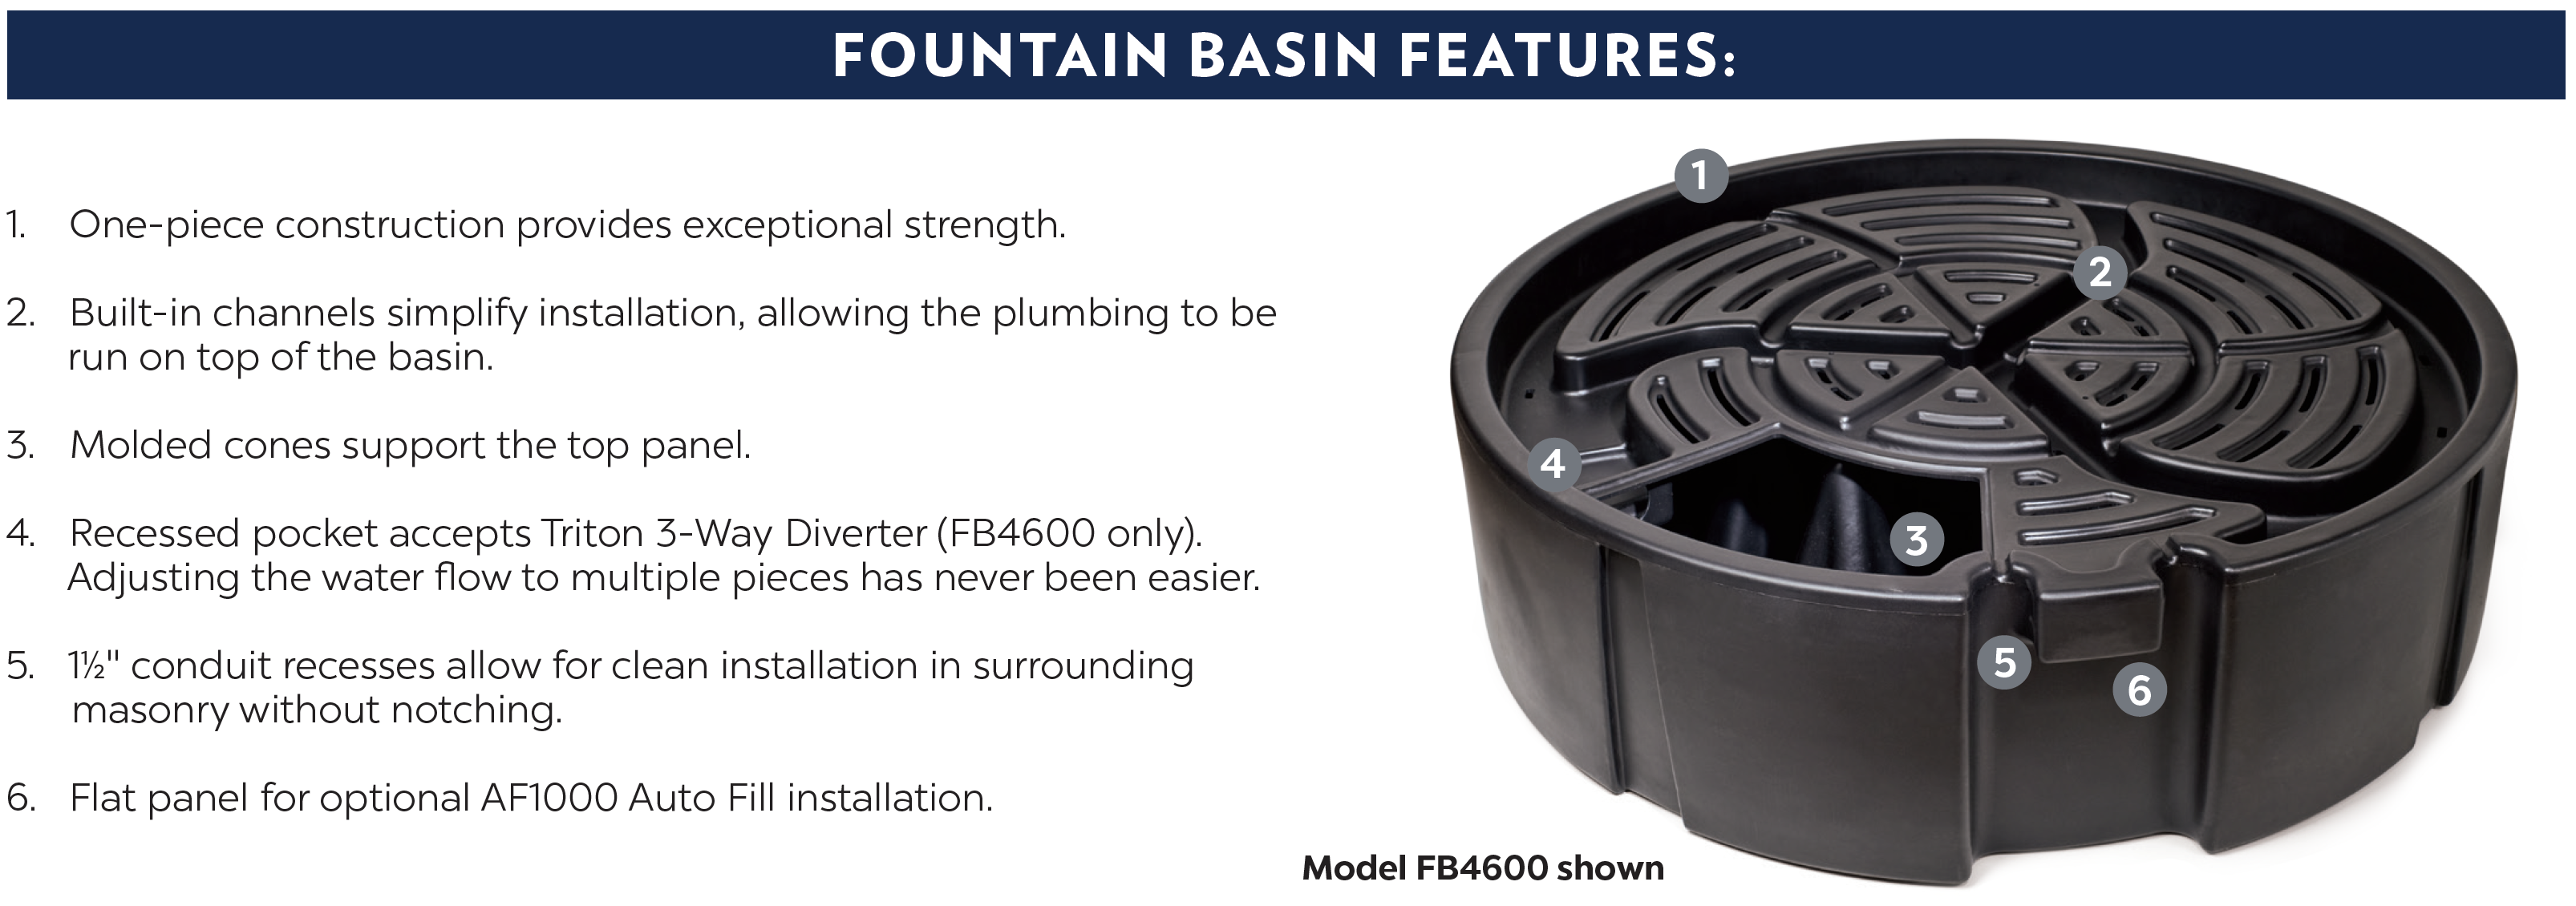 Pro Series Fountain Basin Features